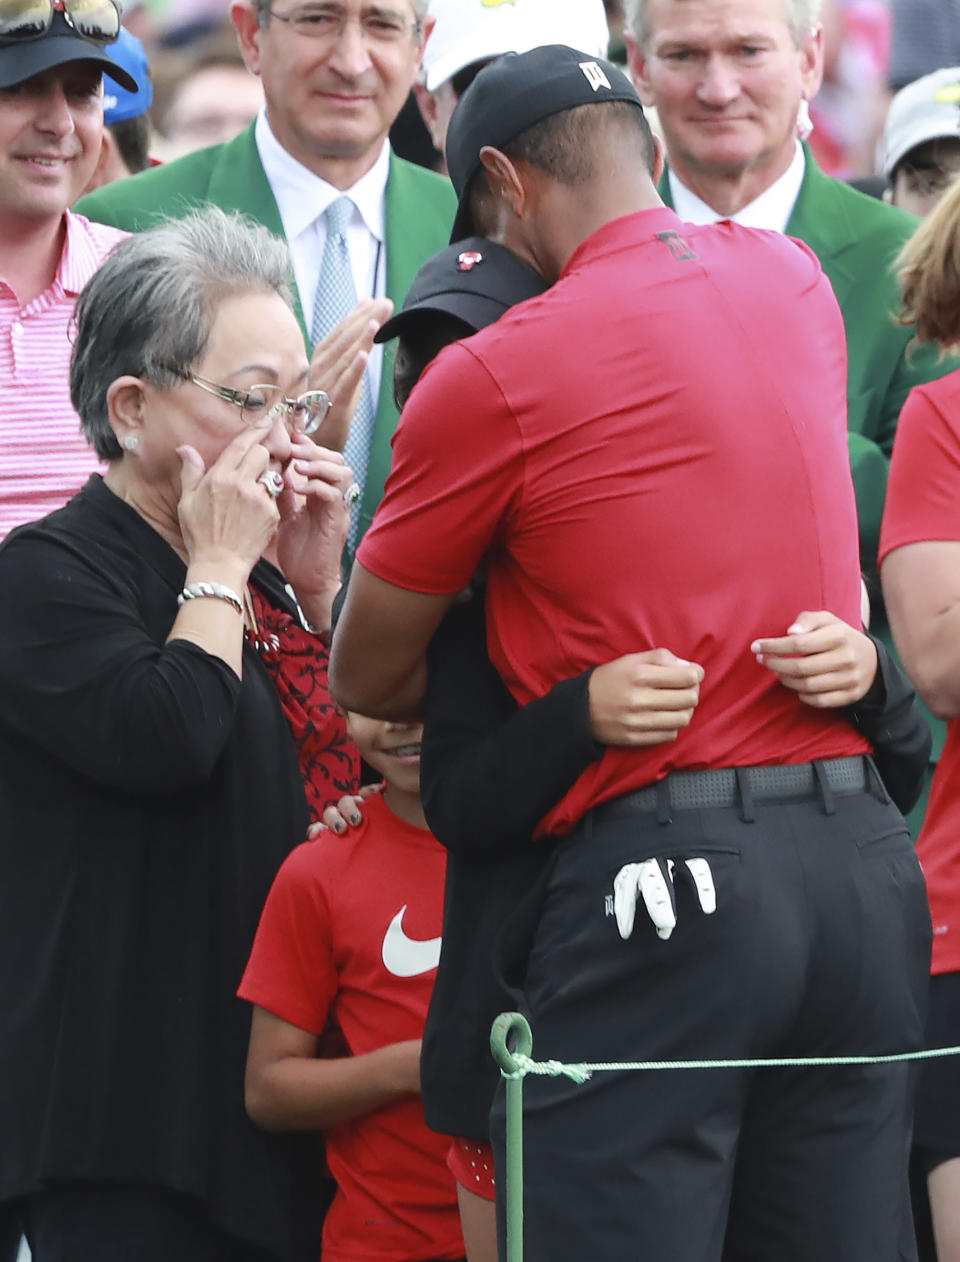 Tiger Woods mother Kultida Woods wipes away tears as he hugs his daughter Sam and son Charlie behind the 18th green after winning the Masters at Augusta National Golf Club on Sunday, April 14, 2019, in Augusta. Curtis Compton/ccompton@ajc.com